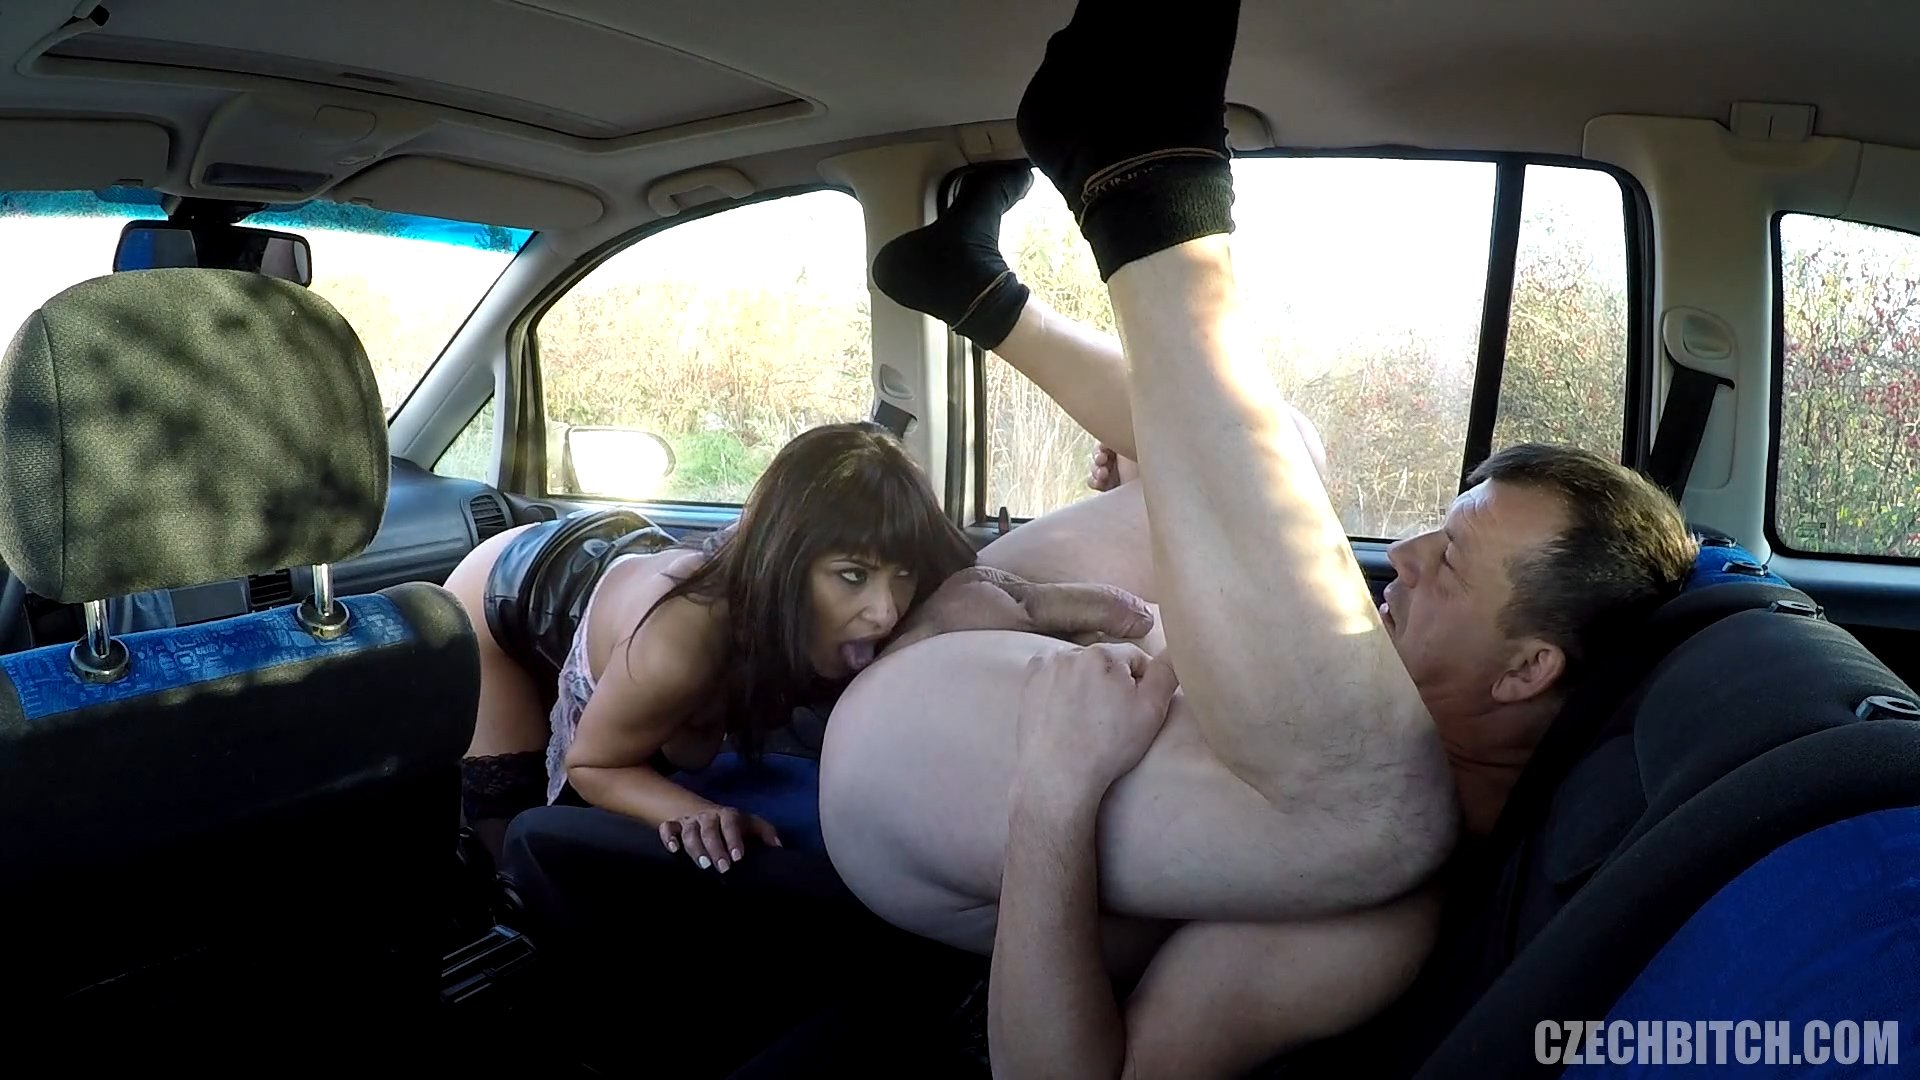 Hot sex in a taxi